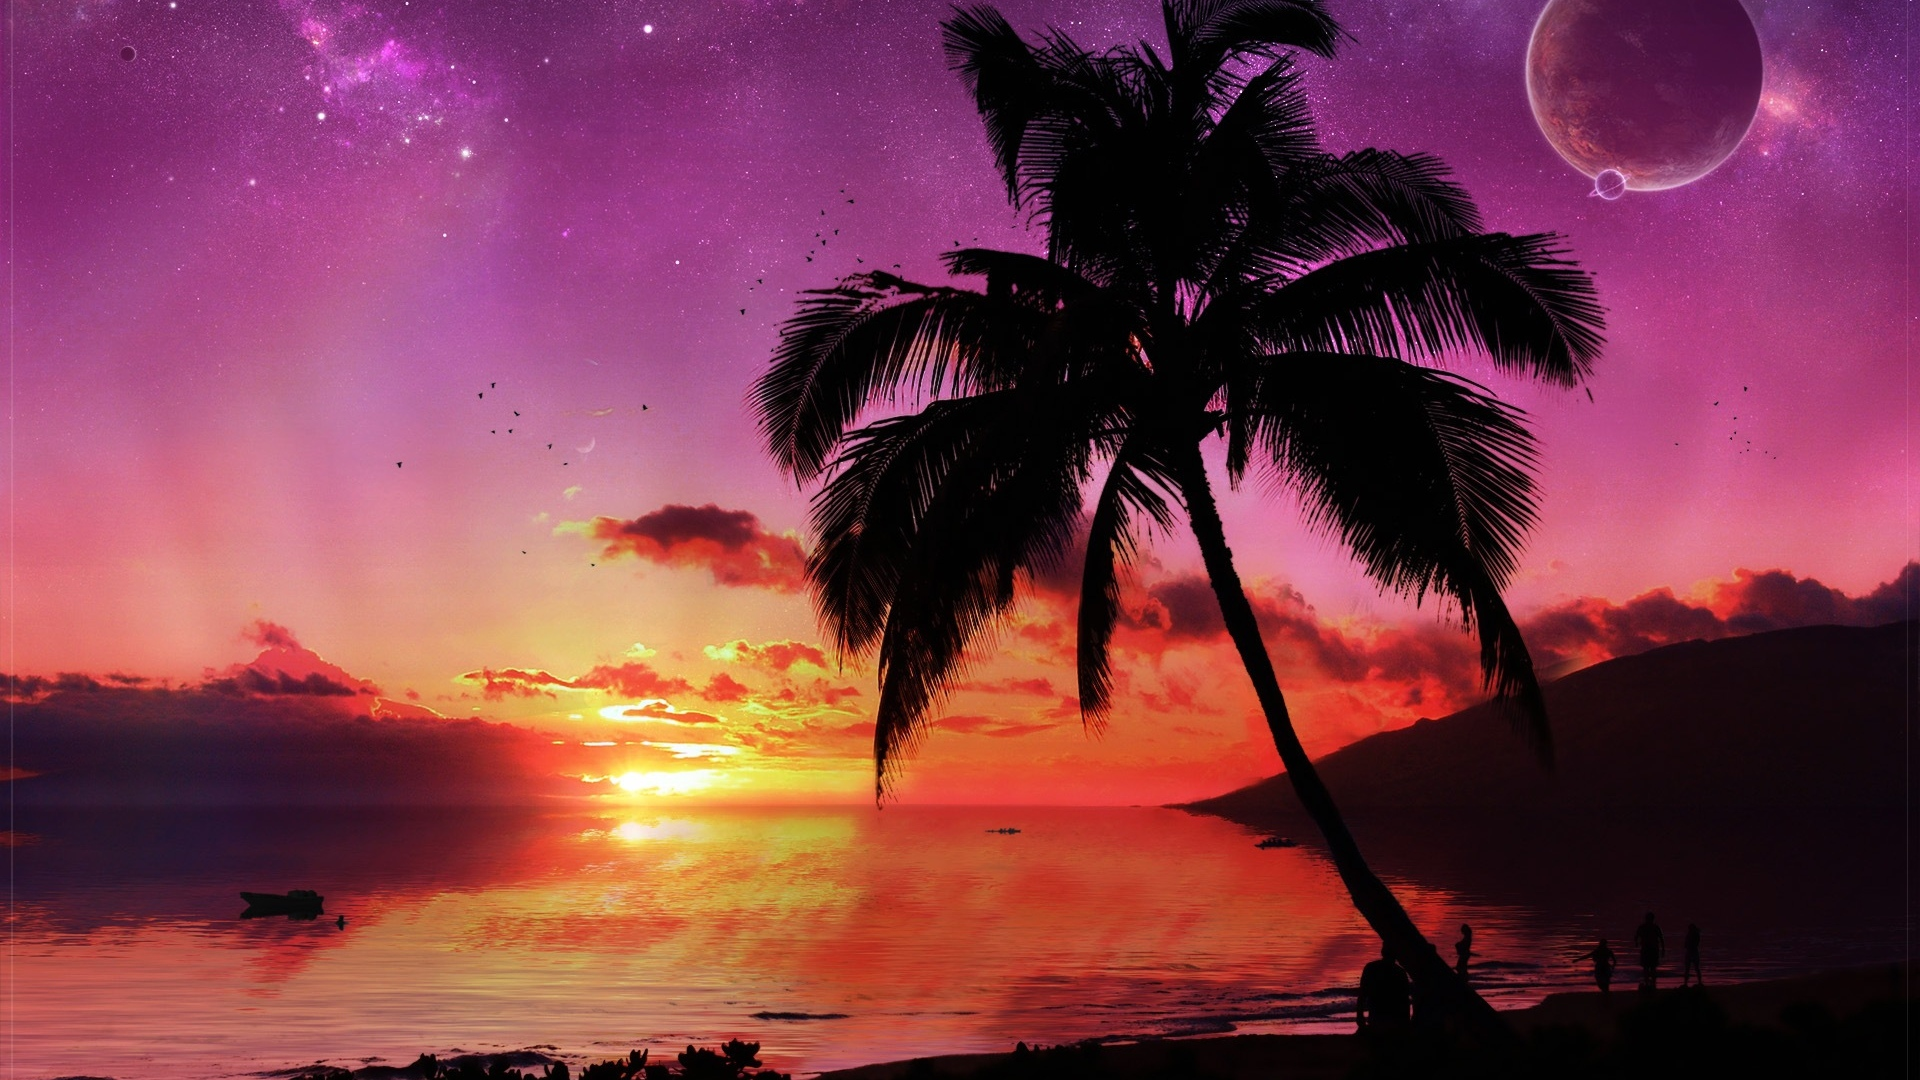 Drawn eiland tropical island Tropical Paradise Sunset Wallpaper Tropical